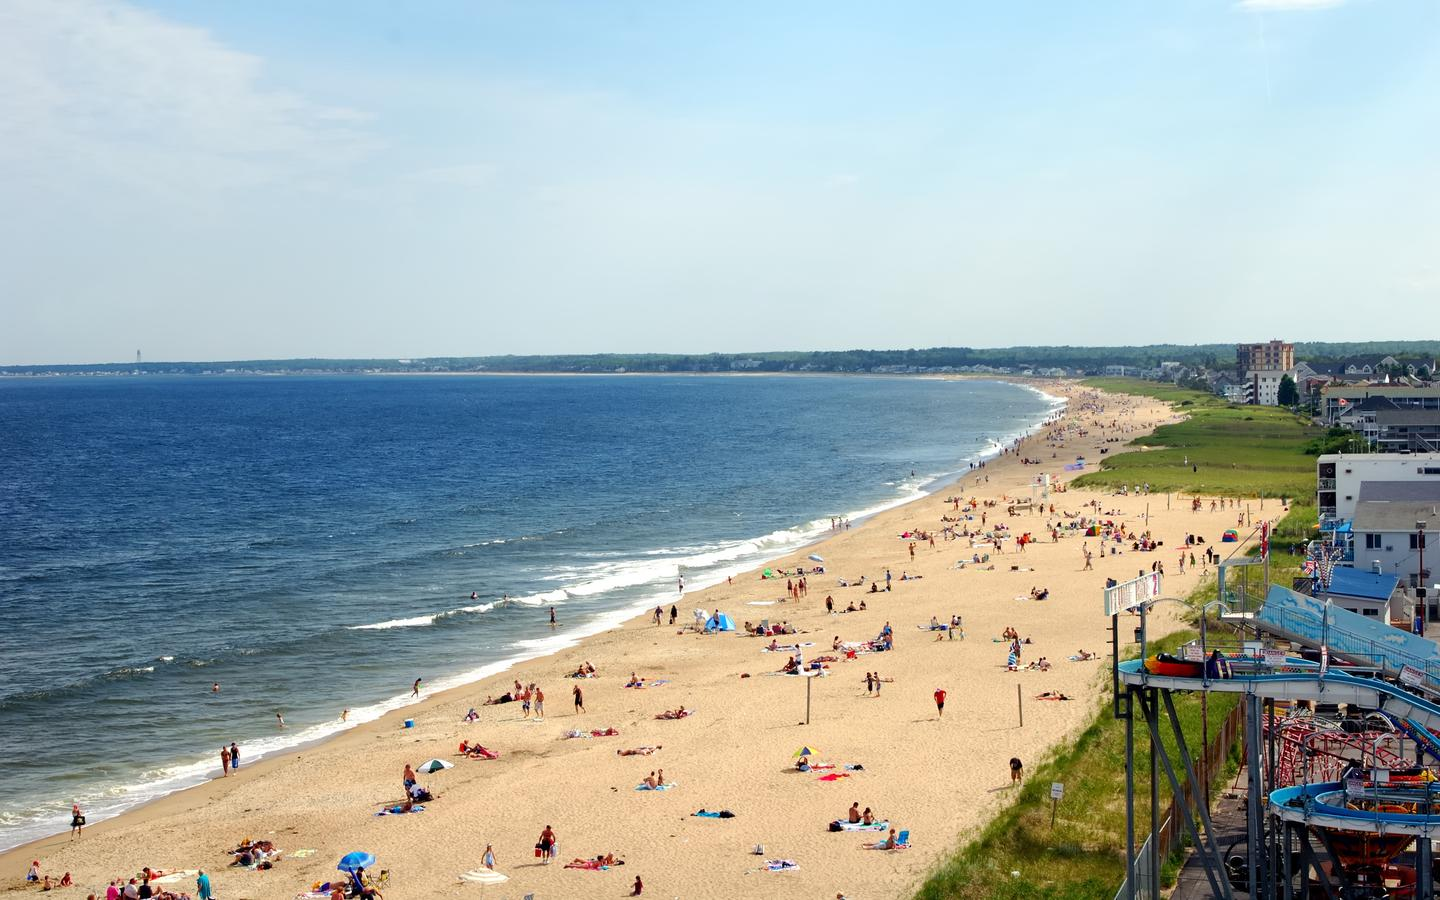 Hotels in Old Orchard Beach